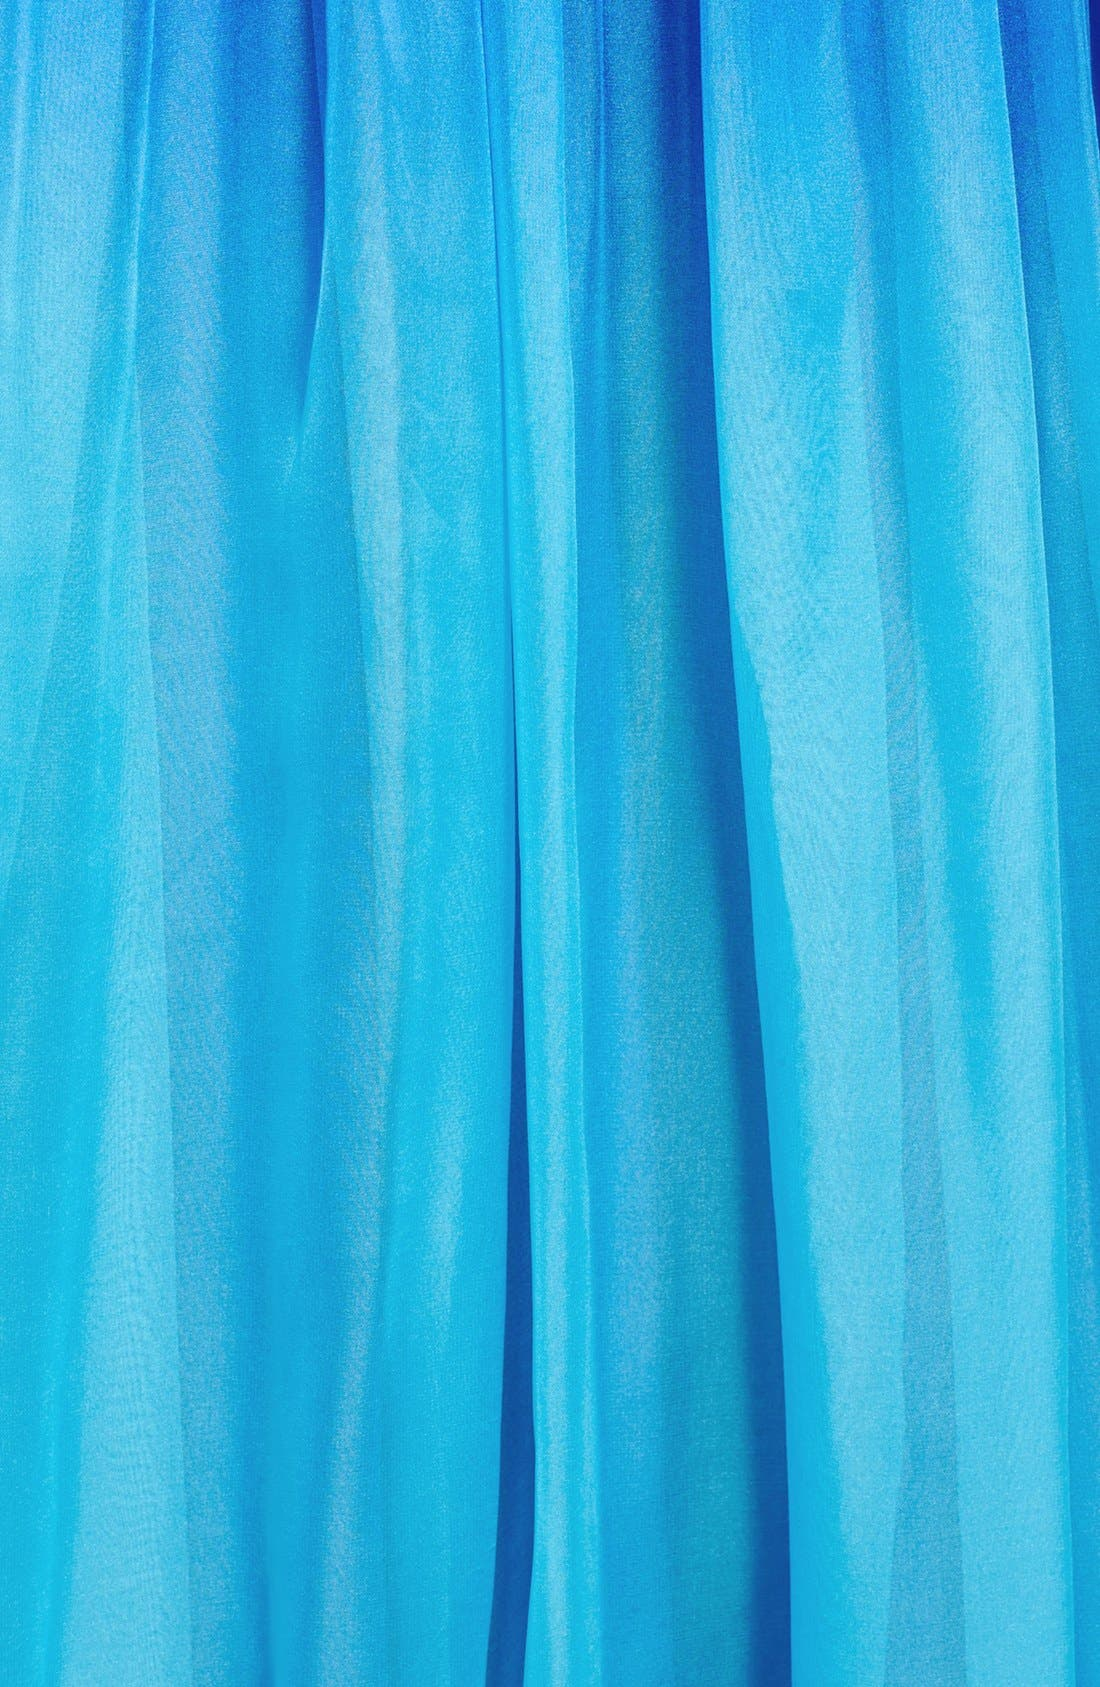 Ruched Ombré Chiffon Strapless Gown,                             Alternate thumbnail 4, color,                             440